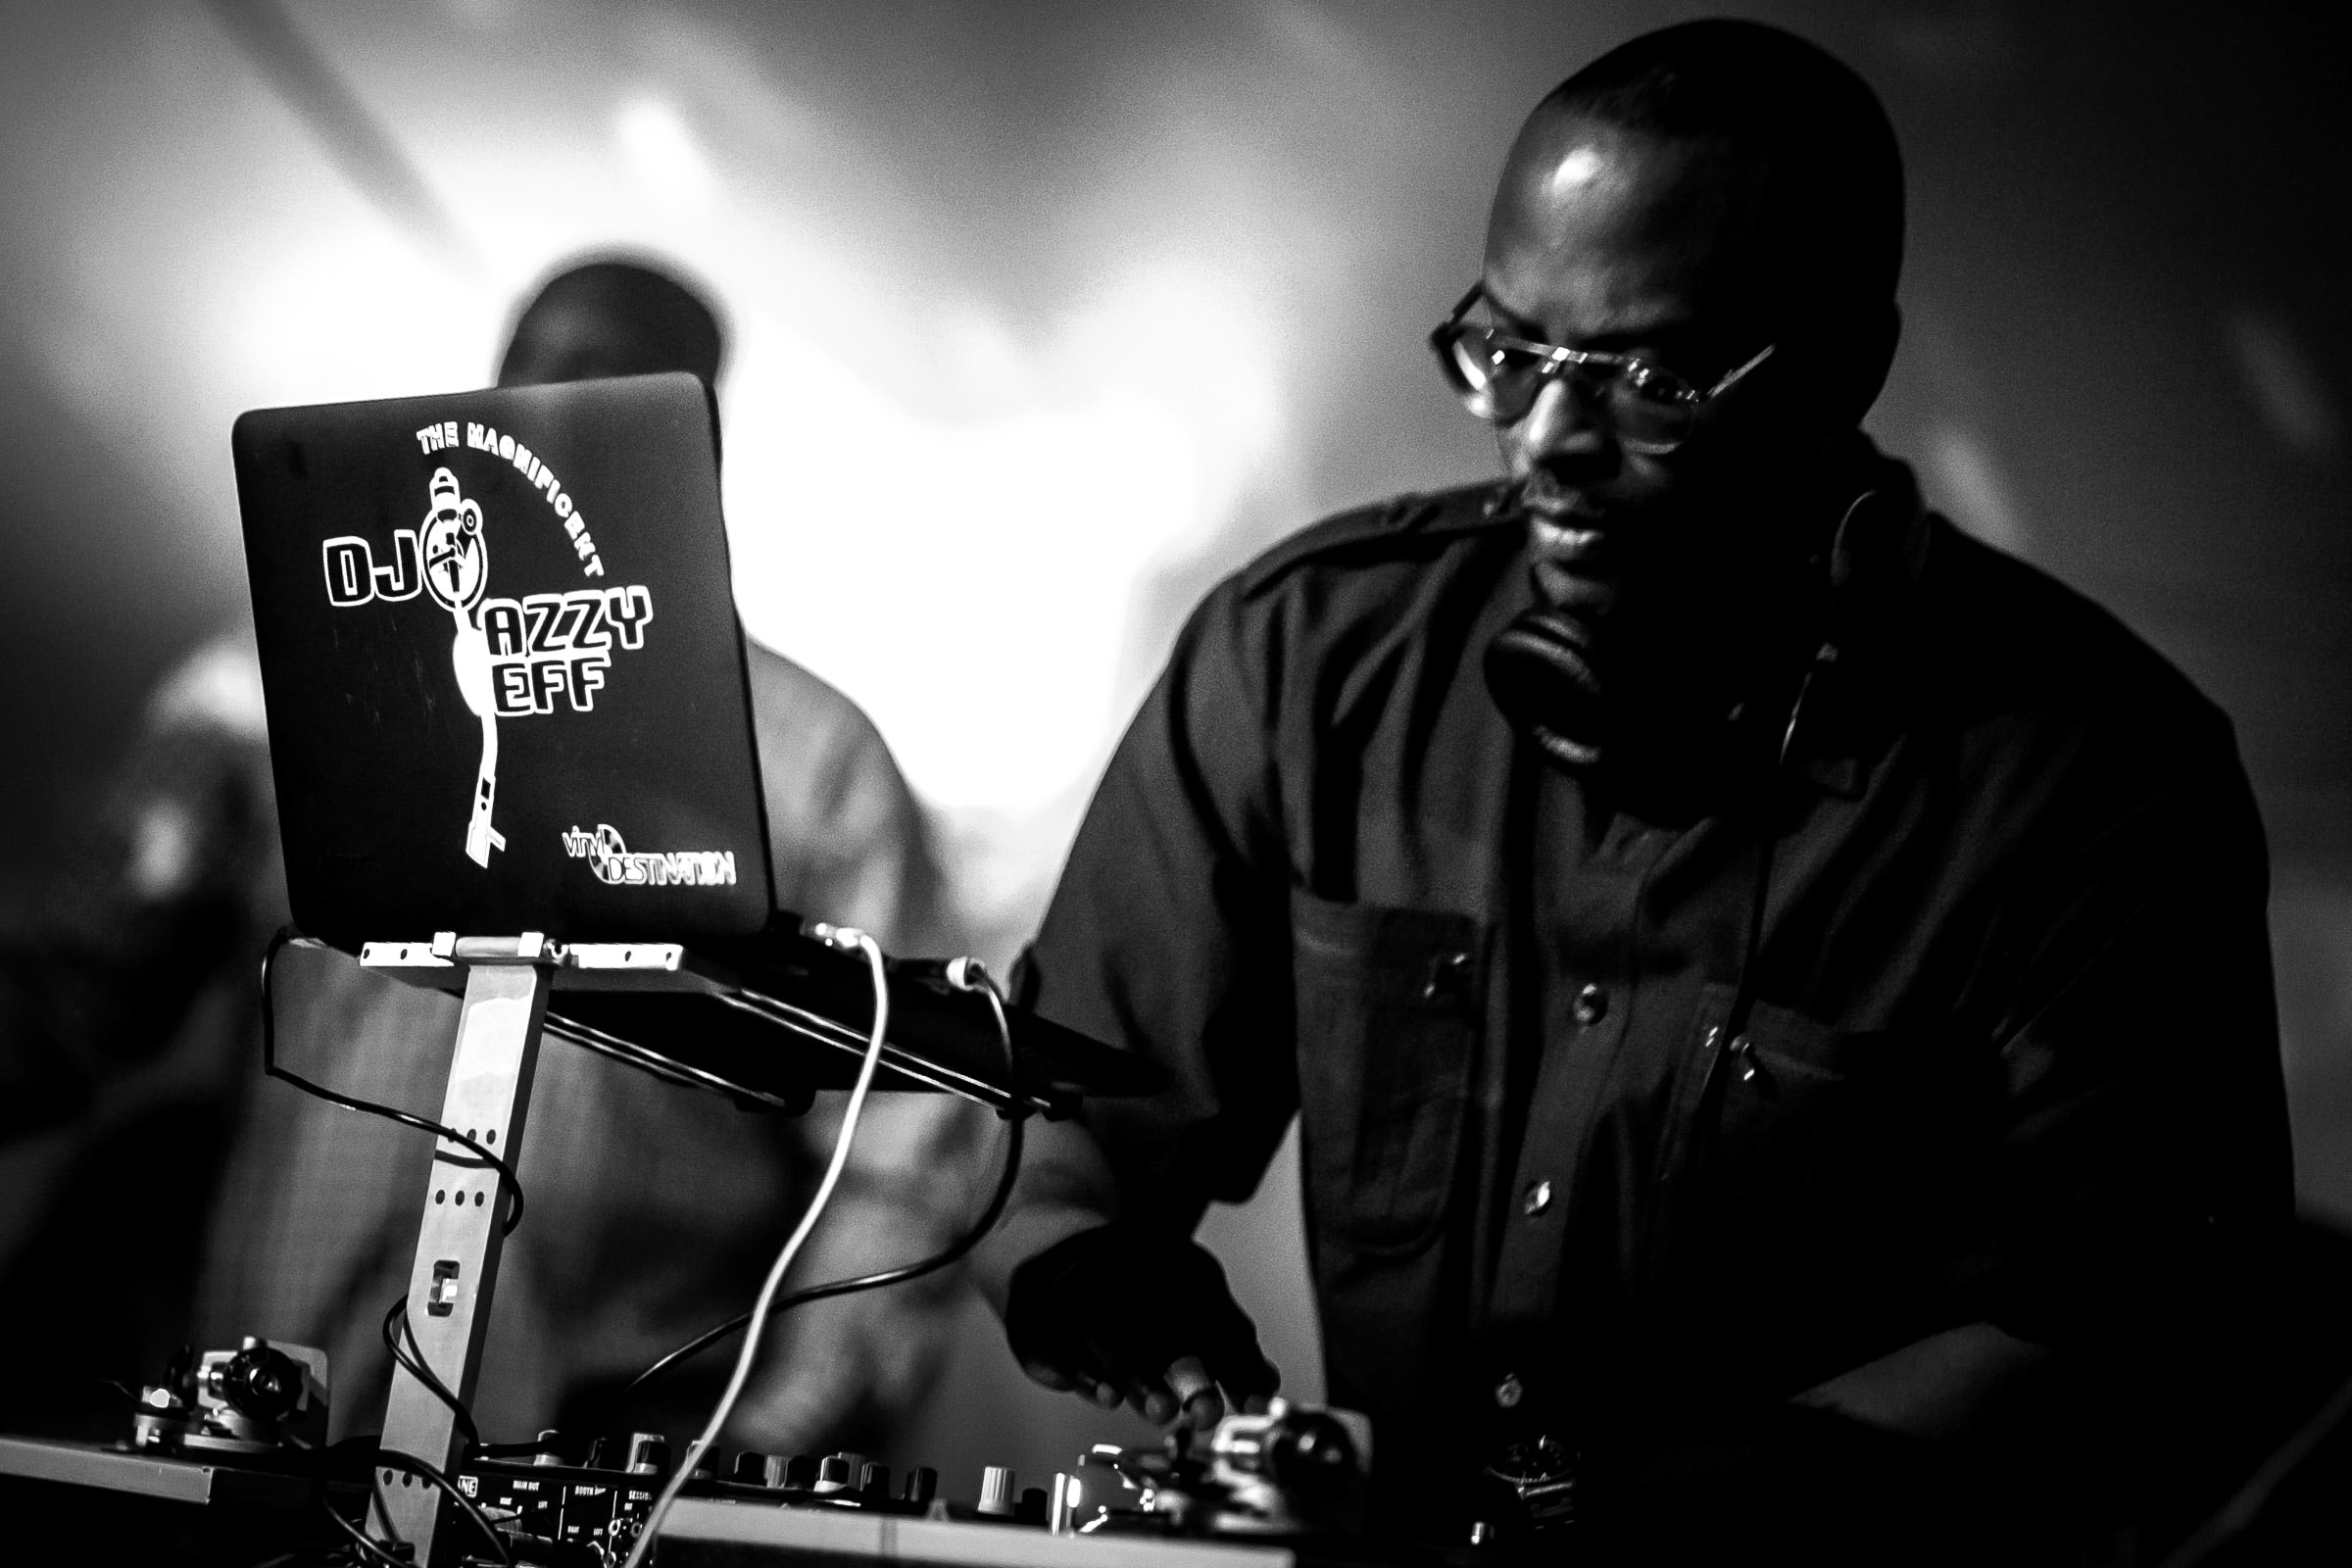 DJ JAZZY JEFF performing during a Trapp Family Lodge wedding reception in Stowe, Vermont.